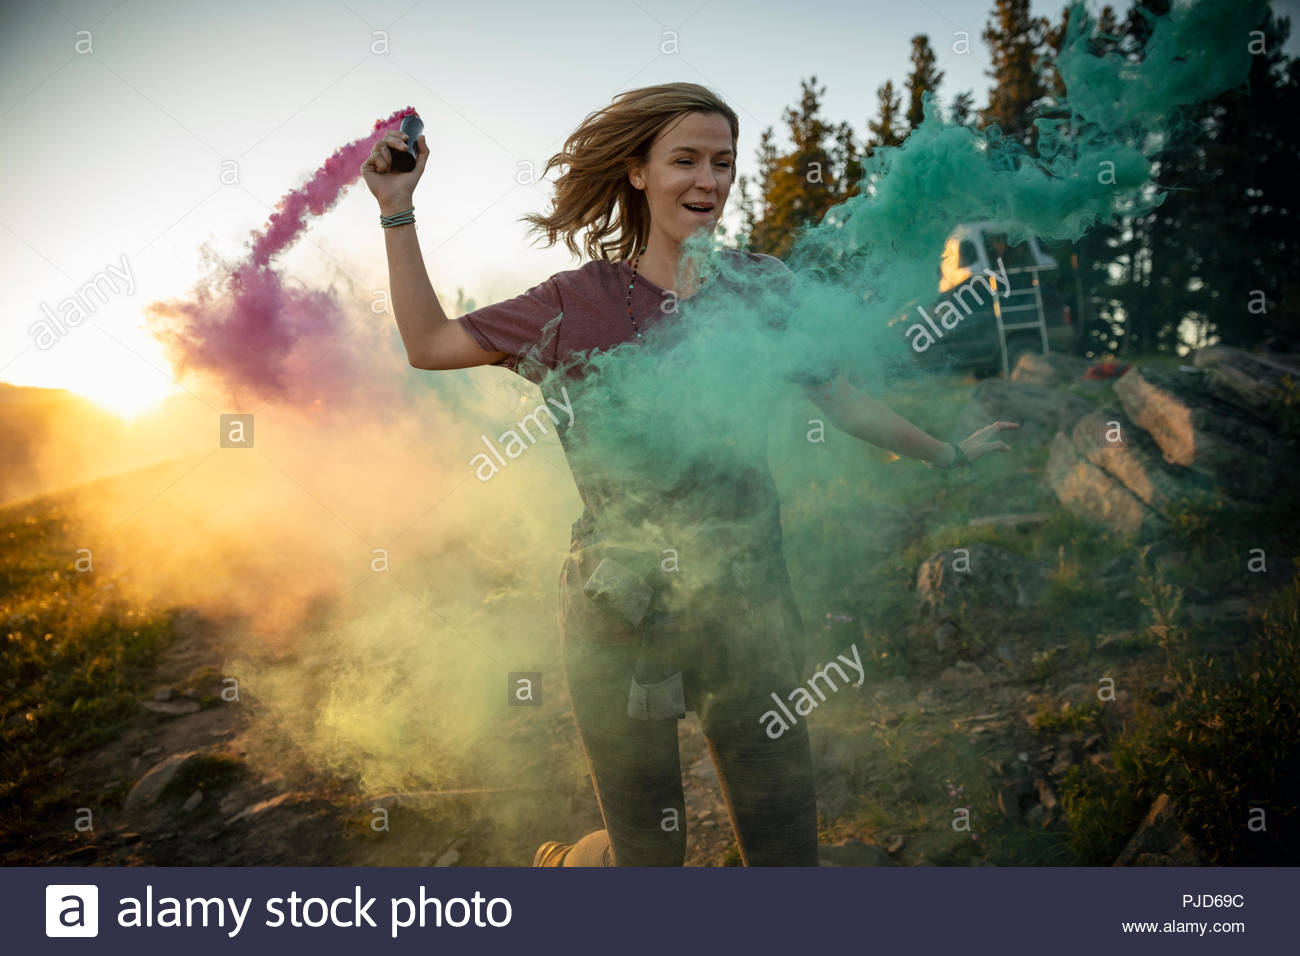 Playful woman running with colorful smoke bombs - Stock Image